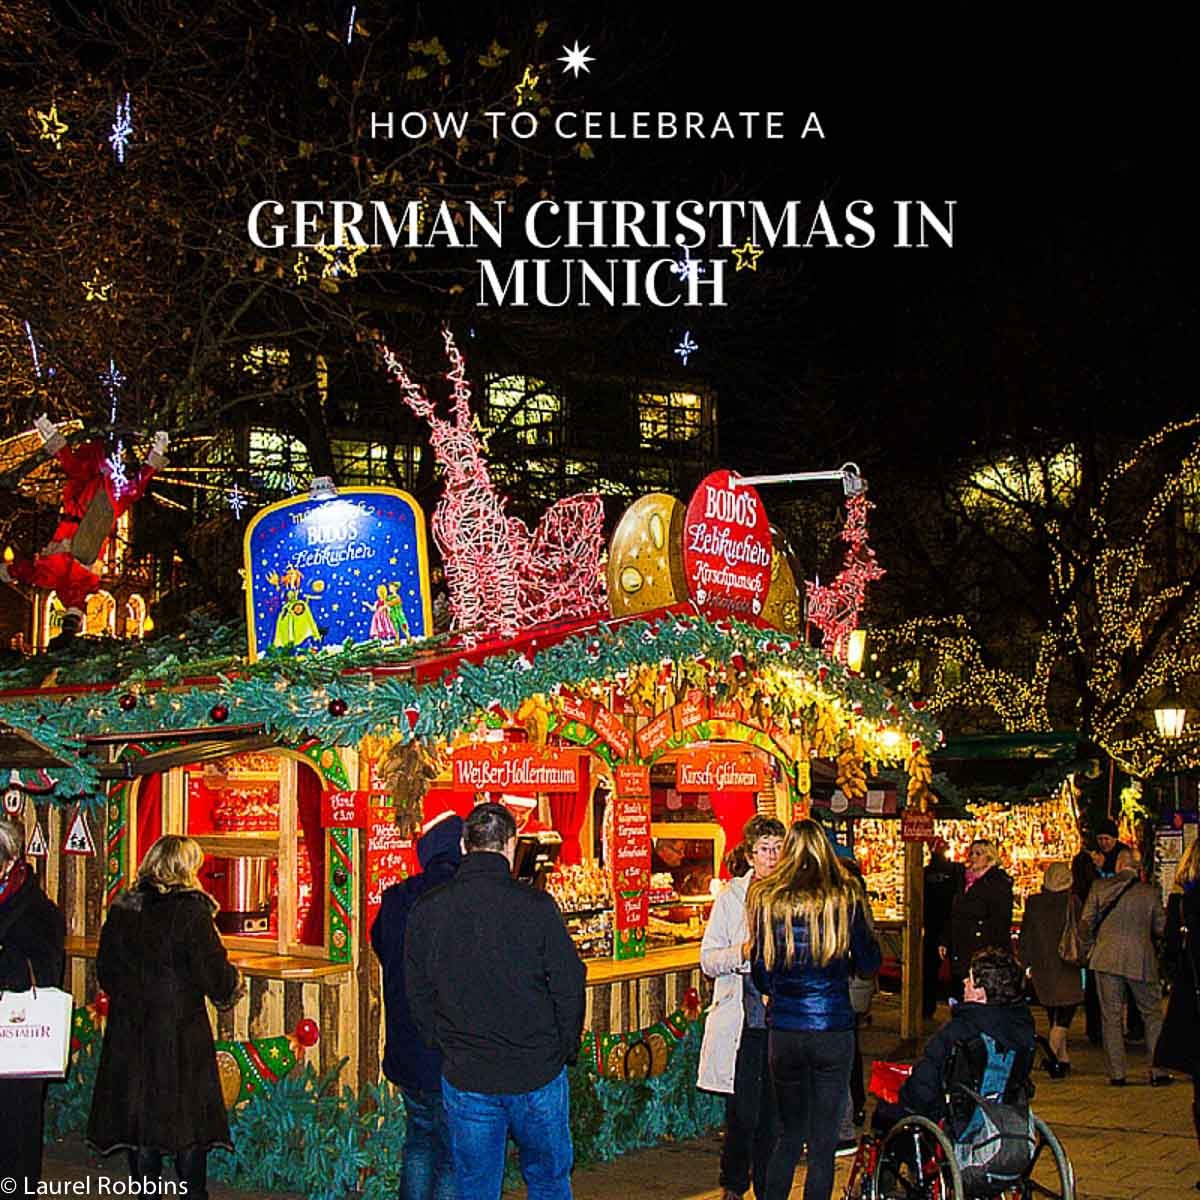 a hut at a German Christmas market in Munich